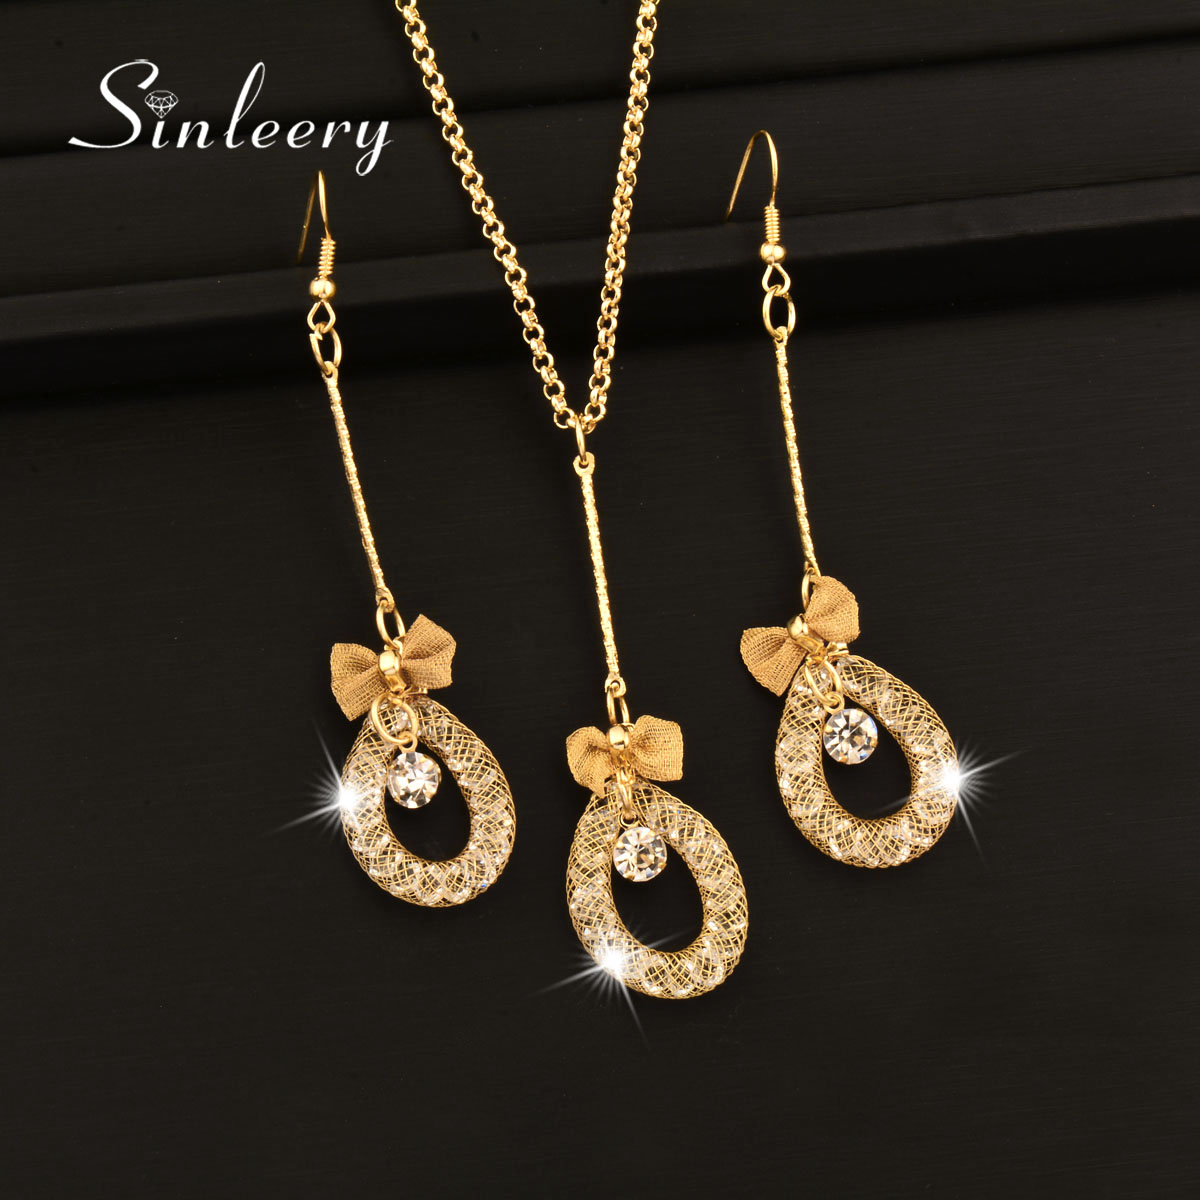 Modeschmuck gold set  Online Get Cheap Schmuck Gold Set -Aliexpress.com | Alibaba Group